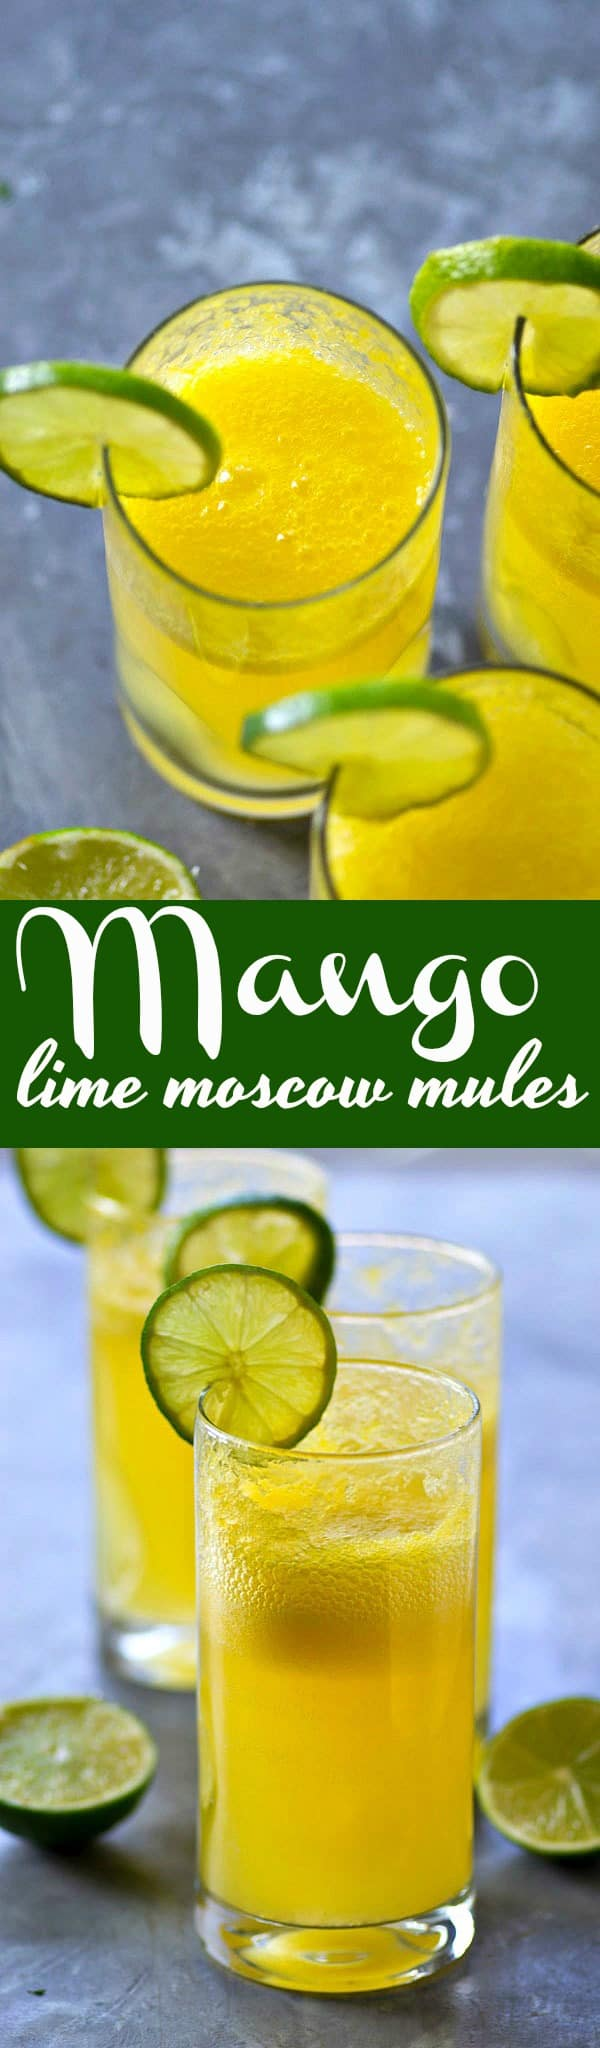 These mango lime moscow mules are a refreshing tropical twist on a classic! Only four ingredients needed and they're SO easy to mix up for a winner weekend sipper.